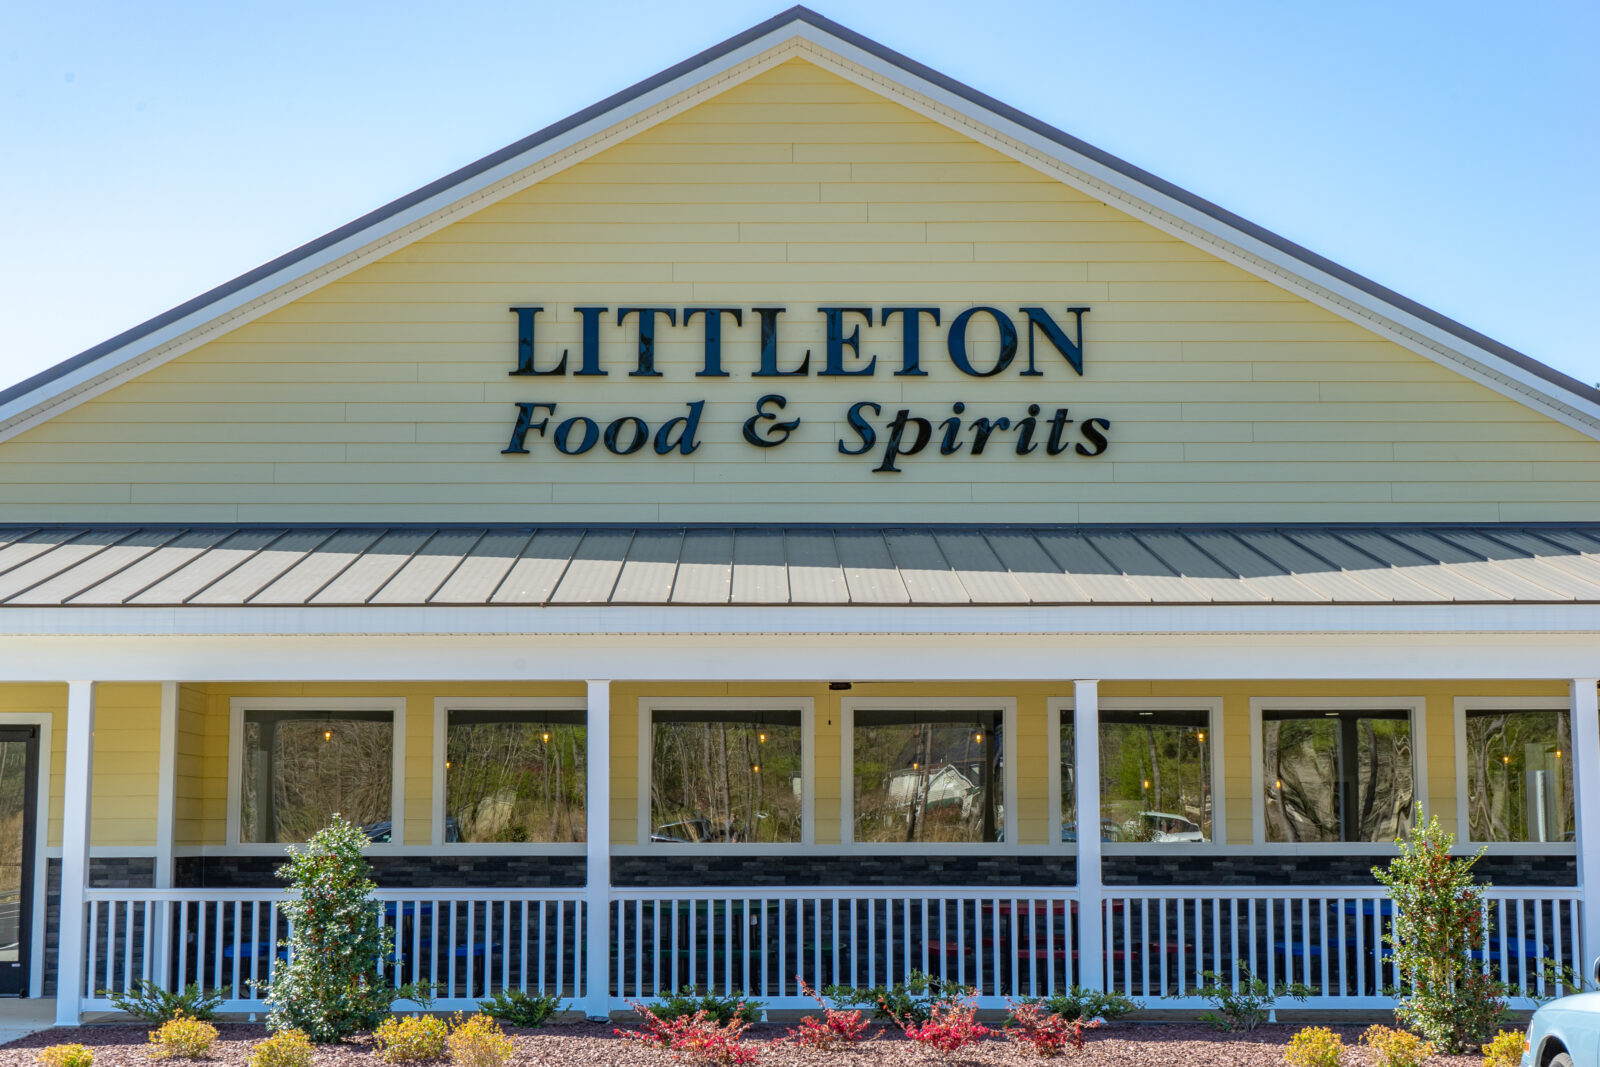 Littleton Food & Spirits front of building